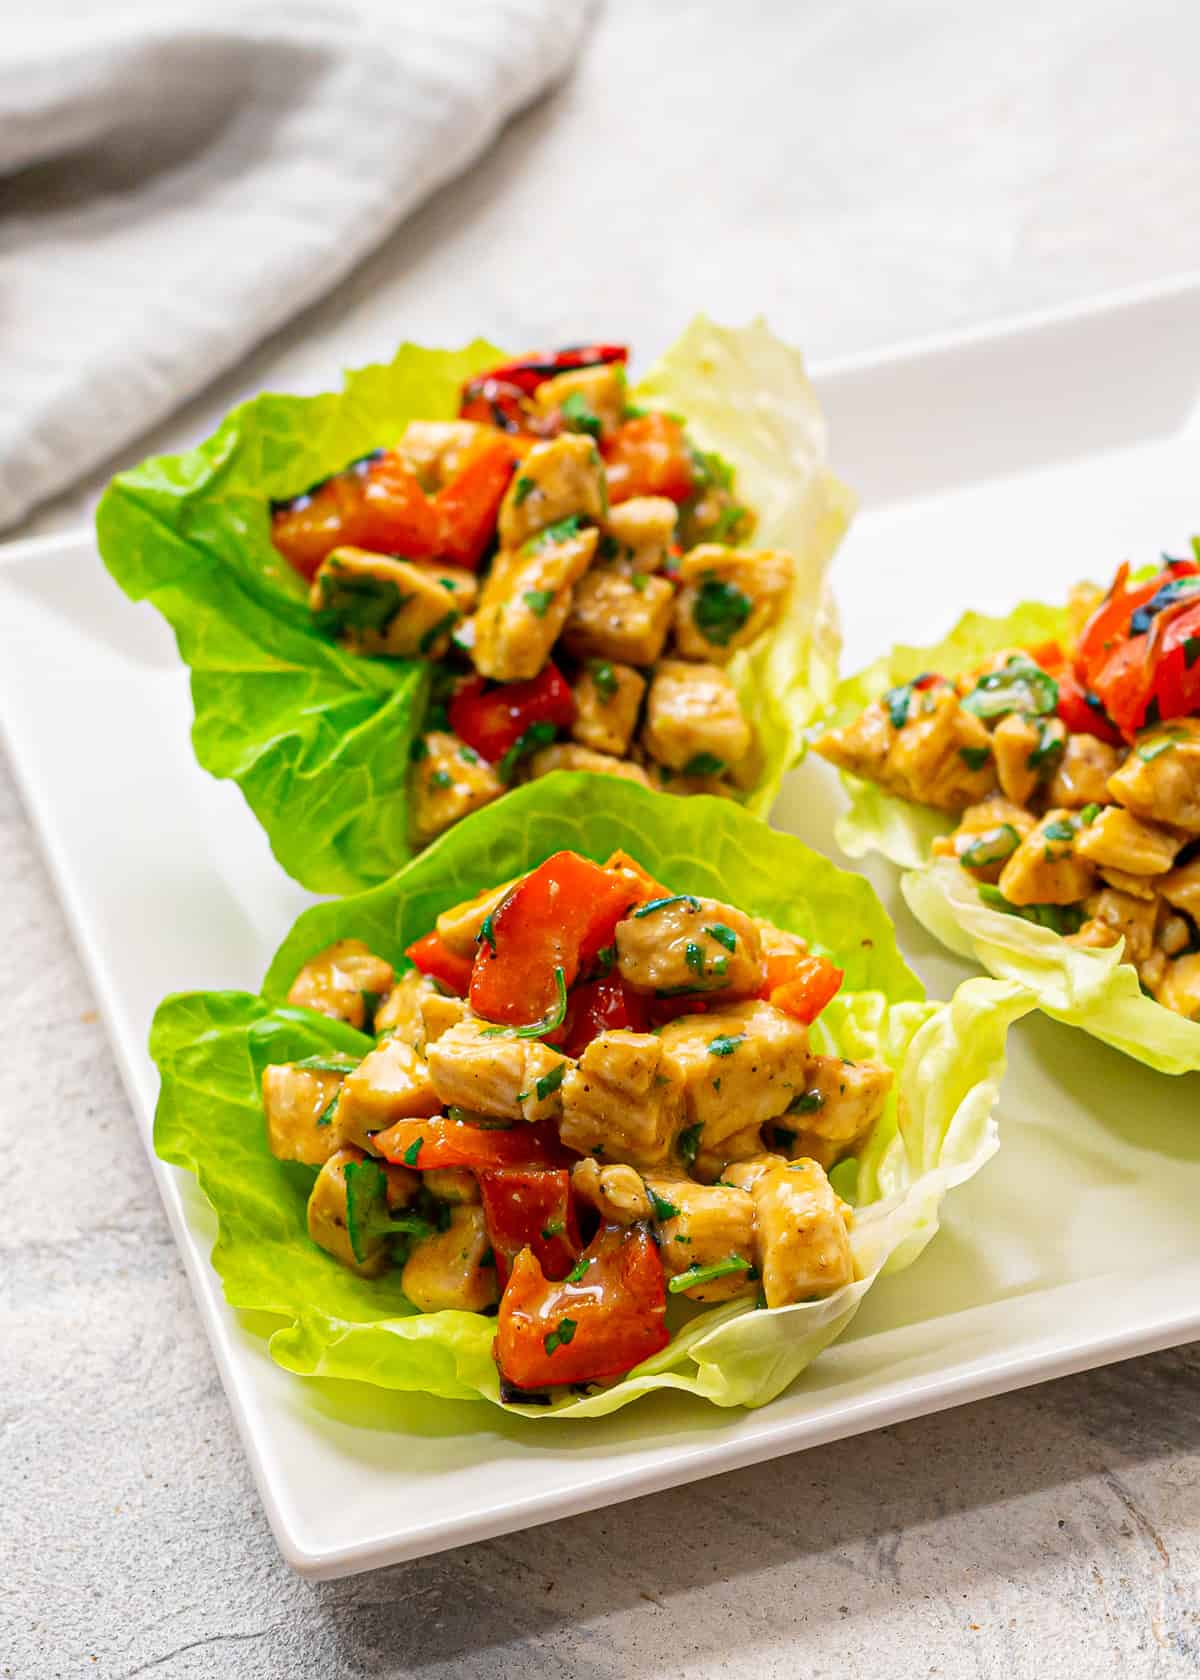 Mayo-free chicken salad in lettuce cups.